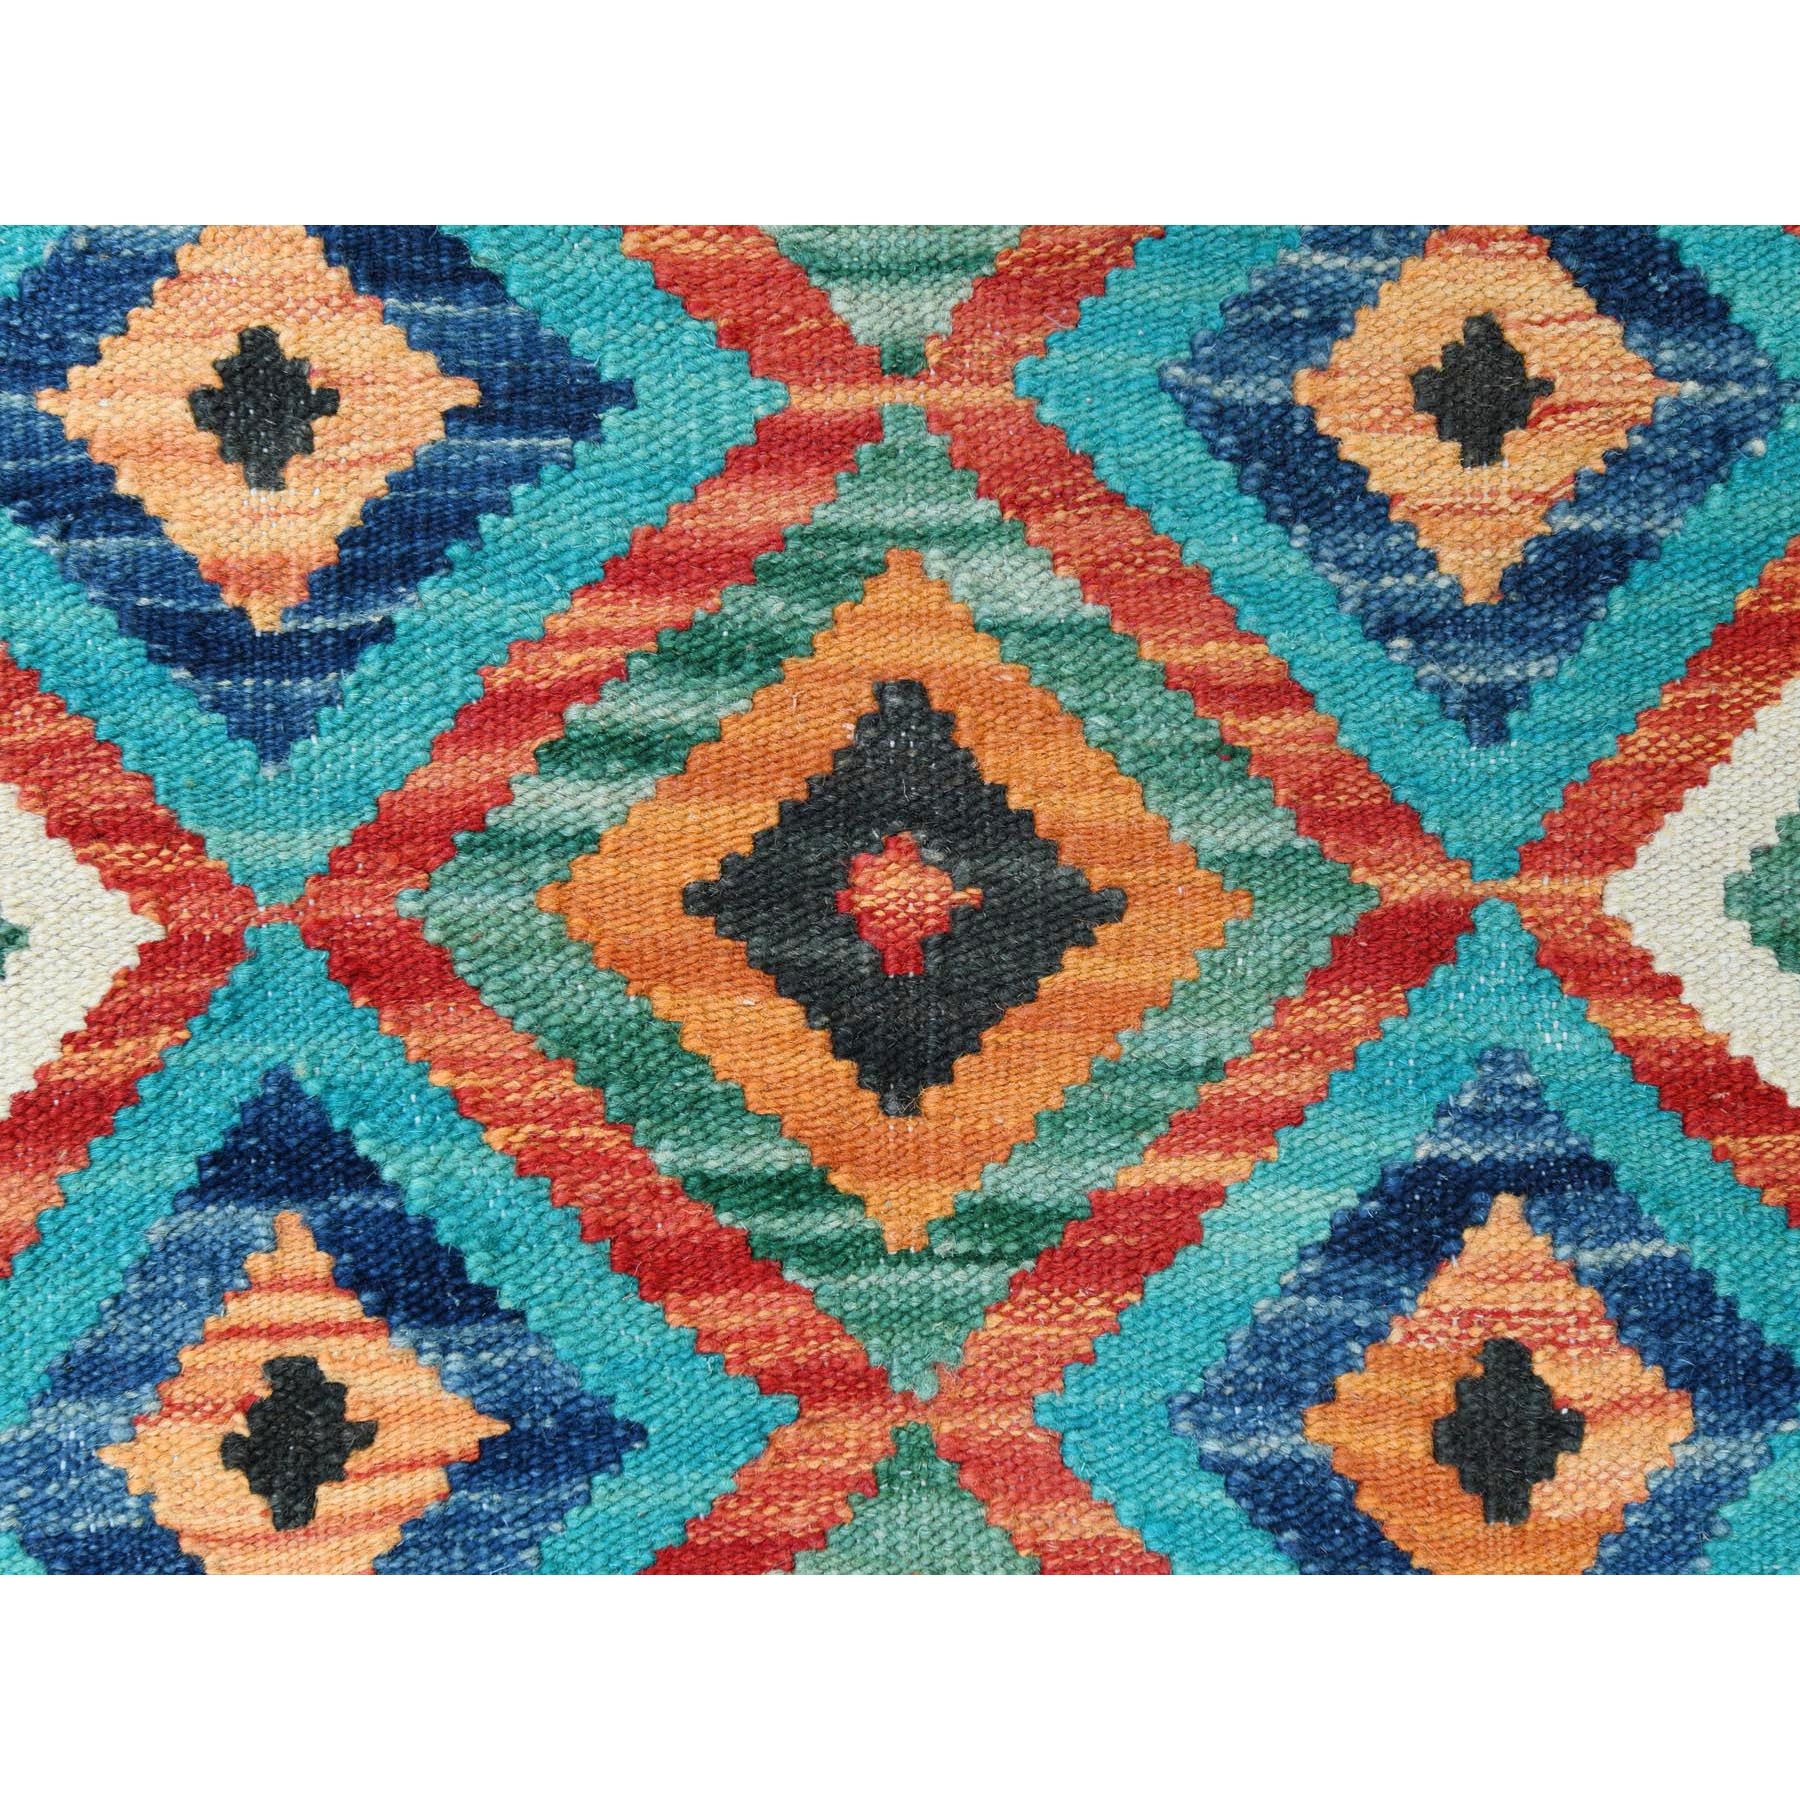 """2'4""""x3' Colorful Afghan Kilim Tribal And Geometric Design Reversible Natural Wool Hand Woven Oriental Rug"""